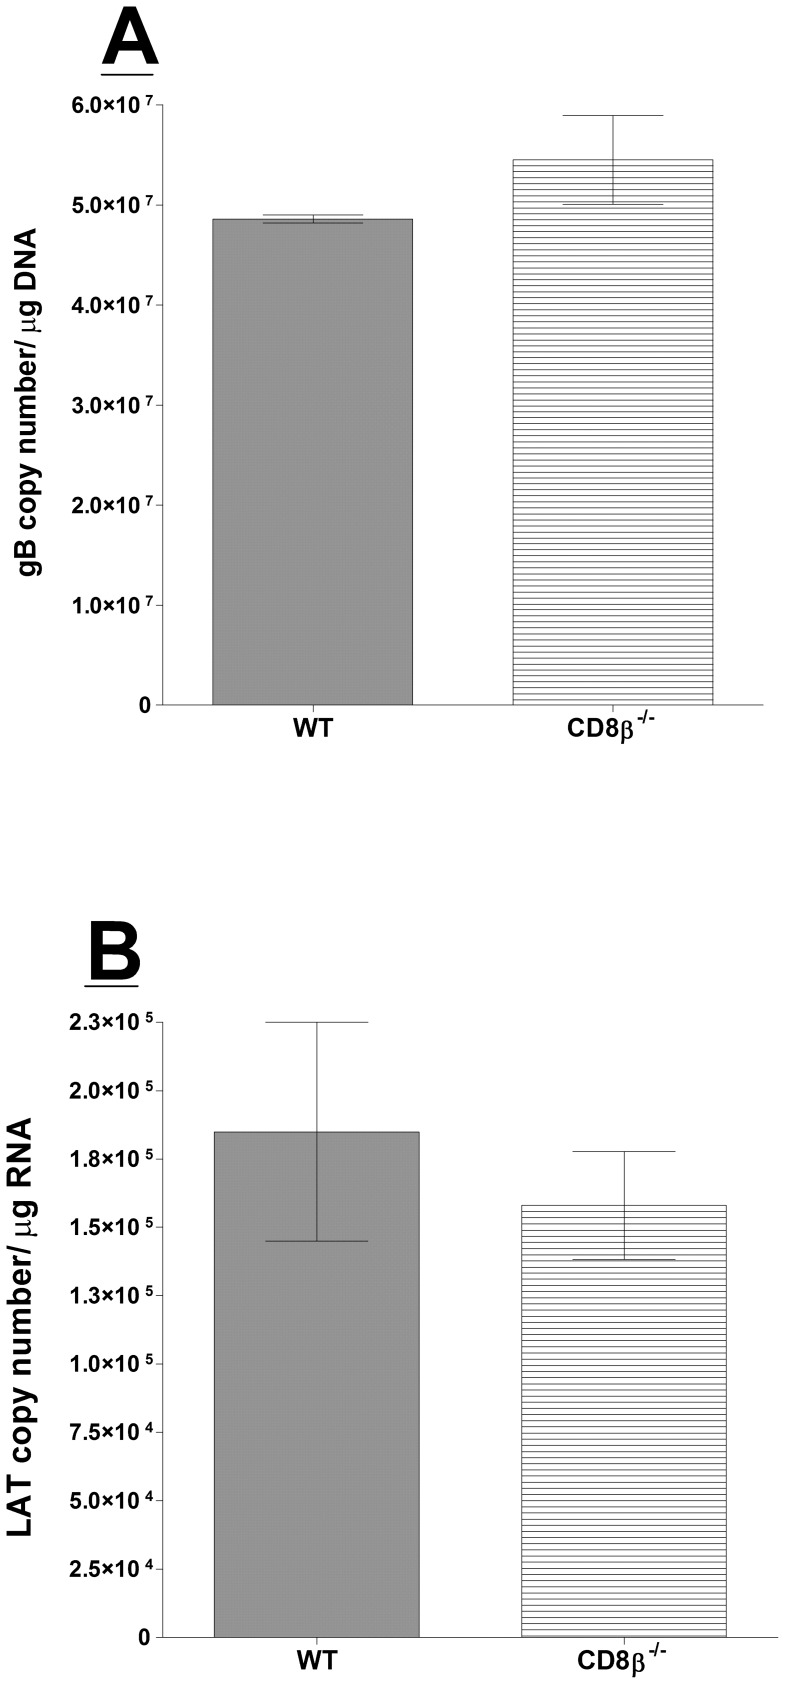 Quantitation of HSV-1 latency in CD8β −/− infected mice. Wild-type (WT) C57BL/6 and CD8β −/− mice were infected as described in Materials and Methods. Twenty-eight days PI, TGs from infected mice were harvested and quantitative PCR and RT-PCR were performed on each individual mouse TG. Each data point for gB DNA represents the mean ± SEM from 24 TGs. For LAT RNA, each data point represents 22 TGs for CD8β −/− and 18 TGs for WT mice from two separate experiments. Panels: A) gB DNA; and B) LAT RNA.